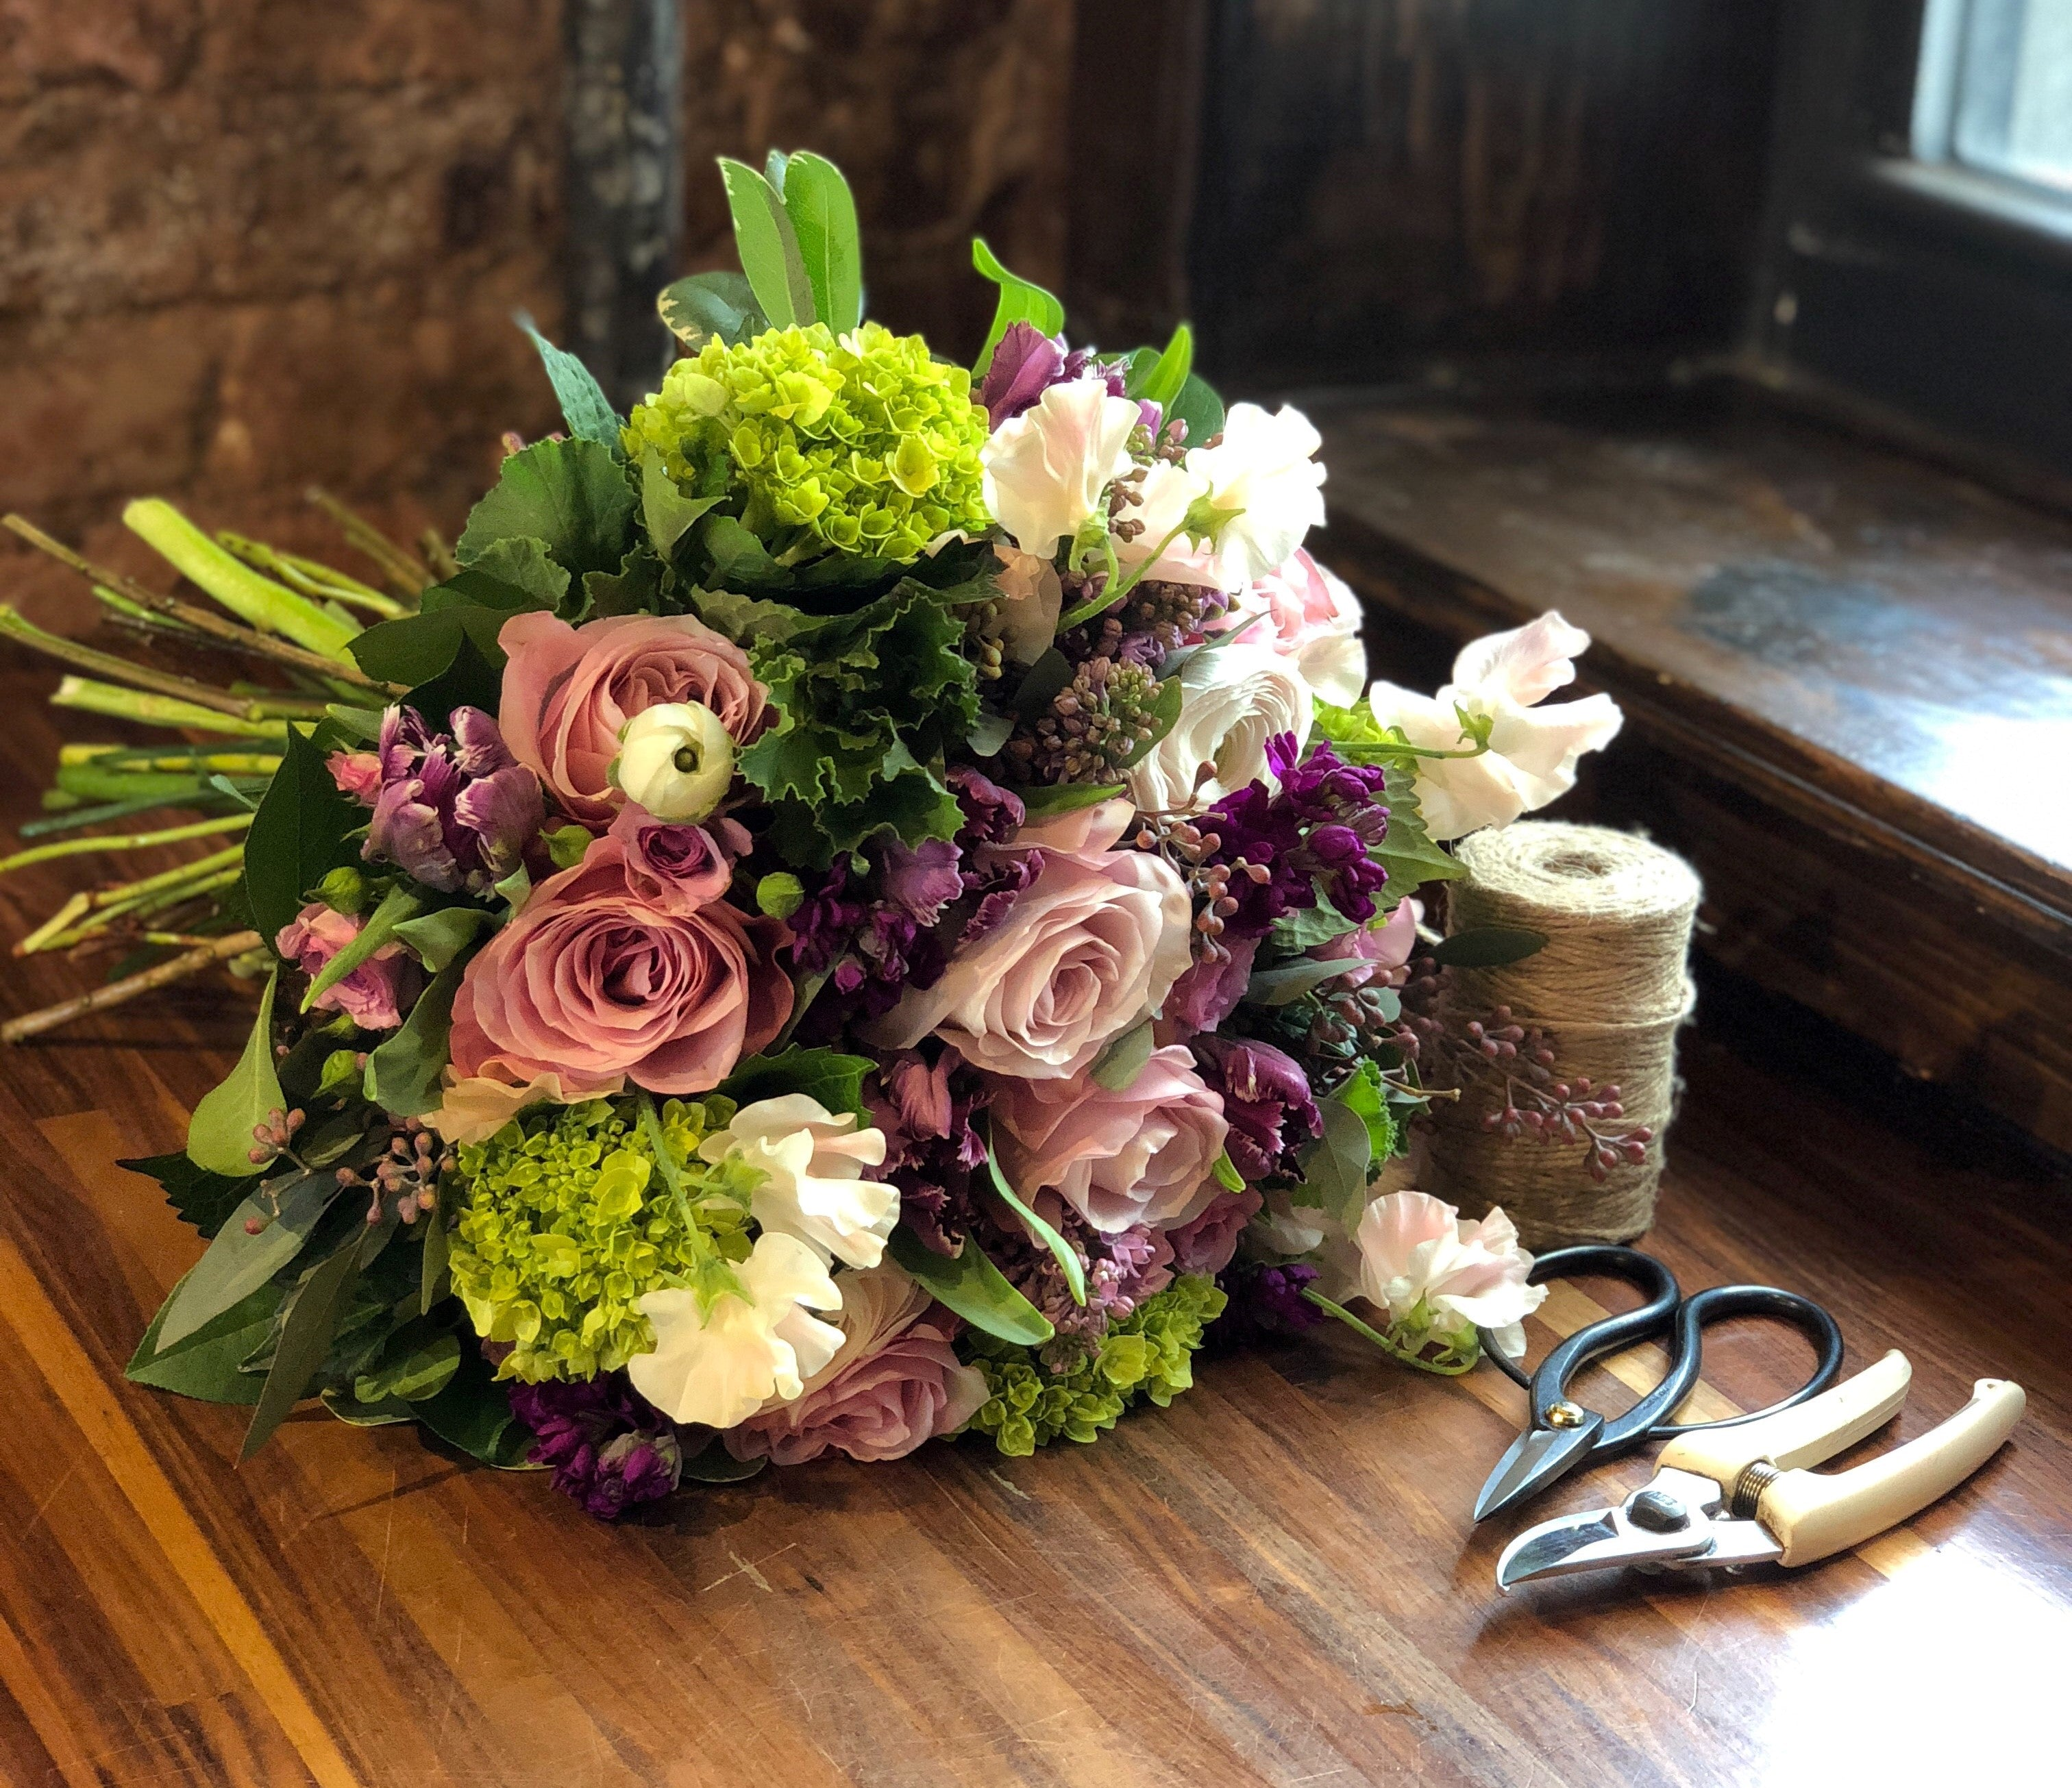 spring floral arranging workshop at Elan Flowers - May 5th, 2018  3 - 5pm